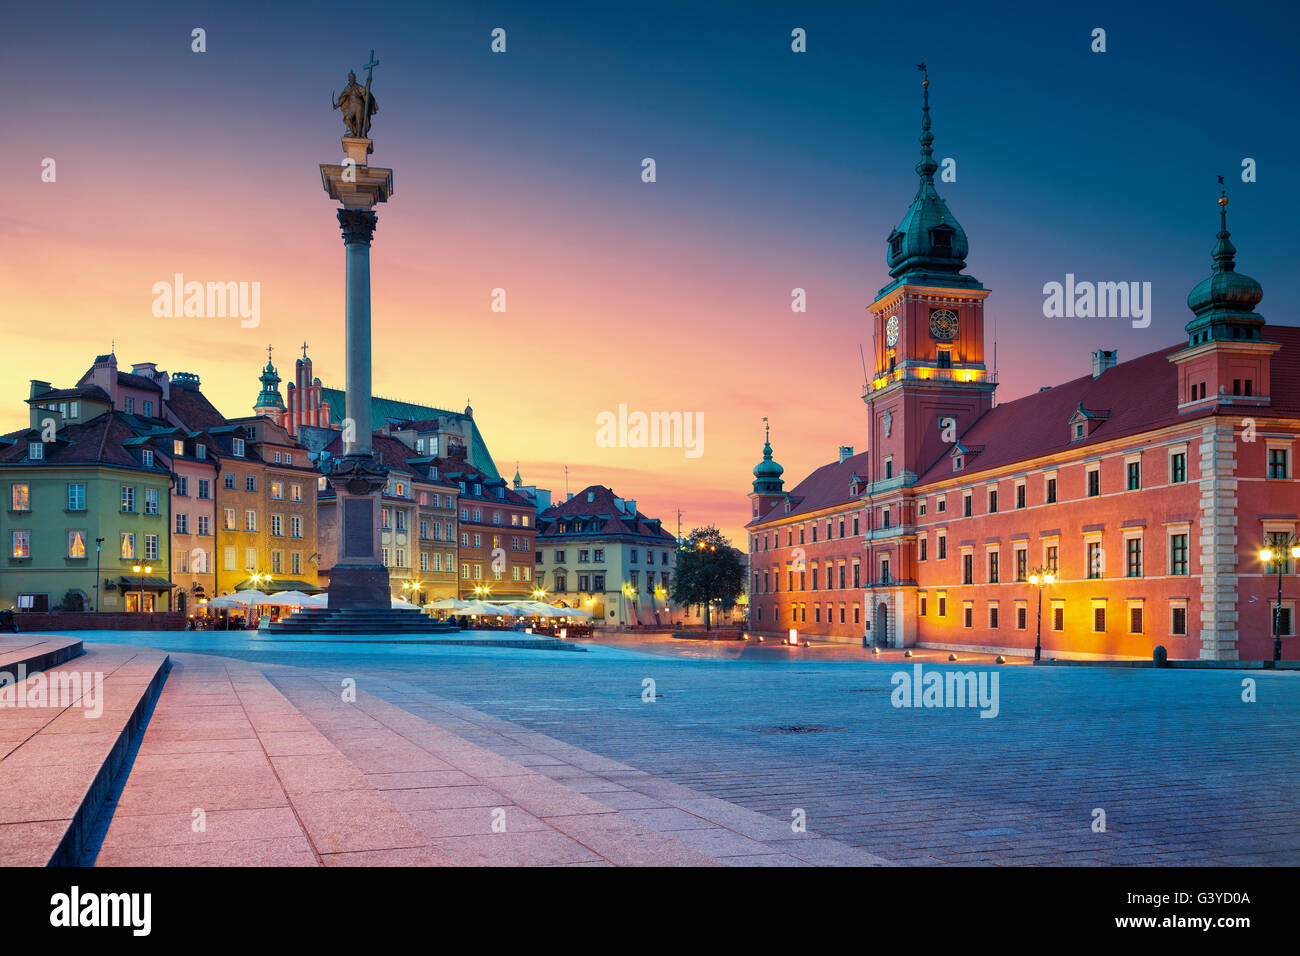 Warsaw. Image of Old Town Warsaw, Poland during sunset. - Stock Image